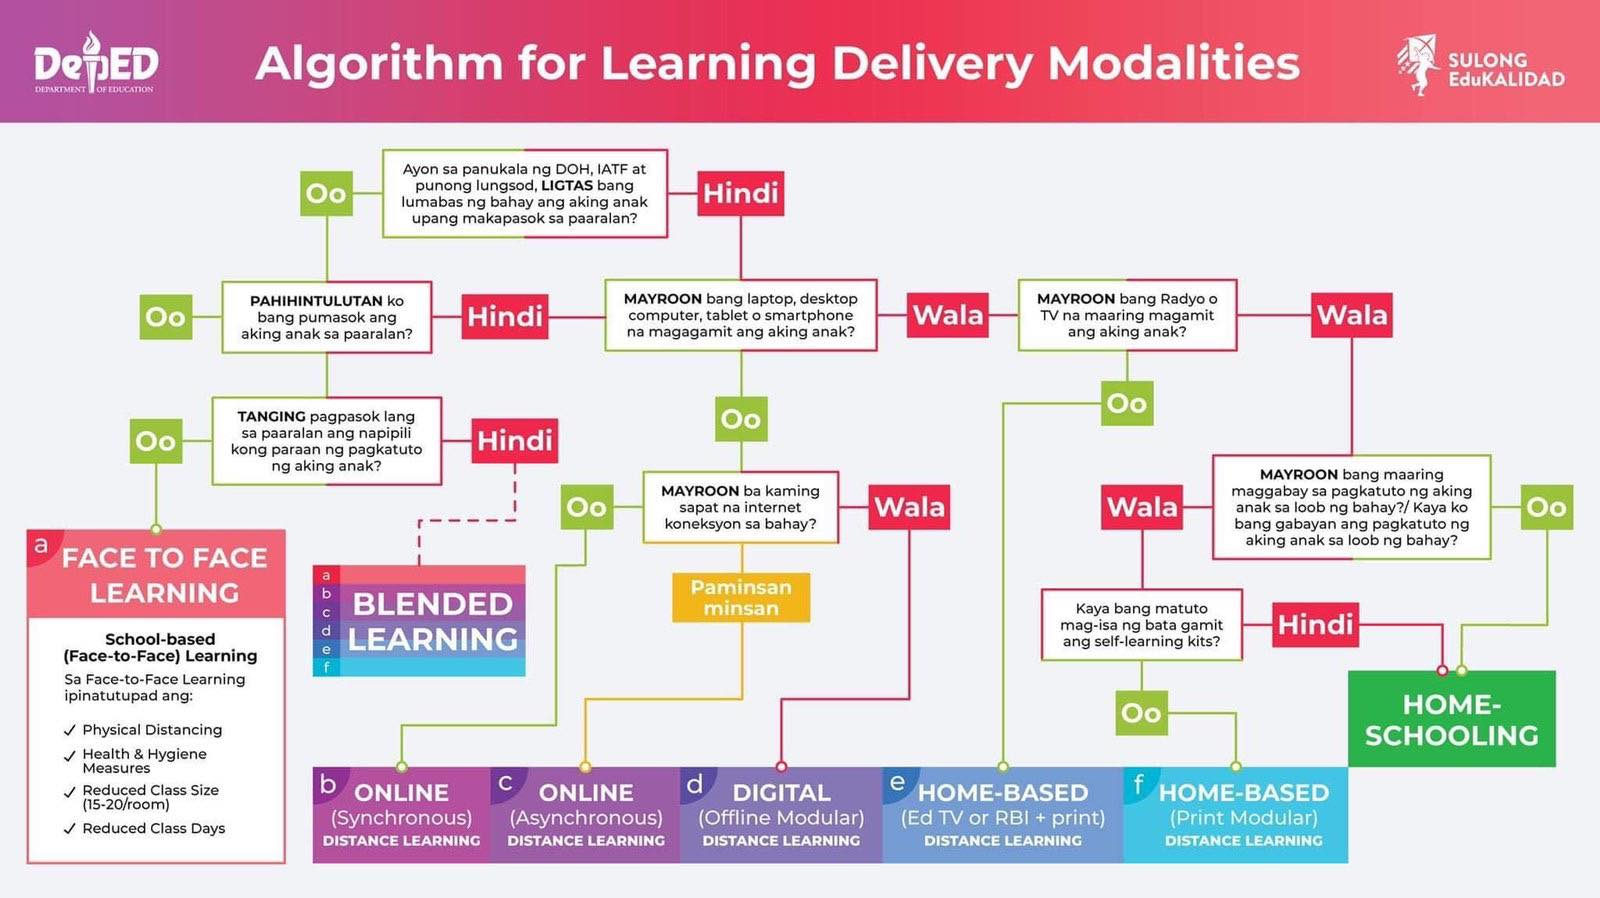 DepEd Algorithm for Learning Delivery Modalities